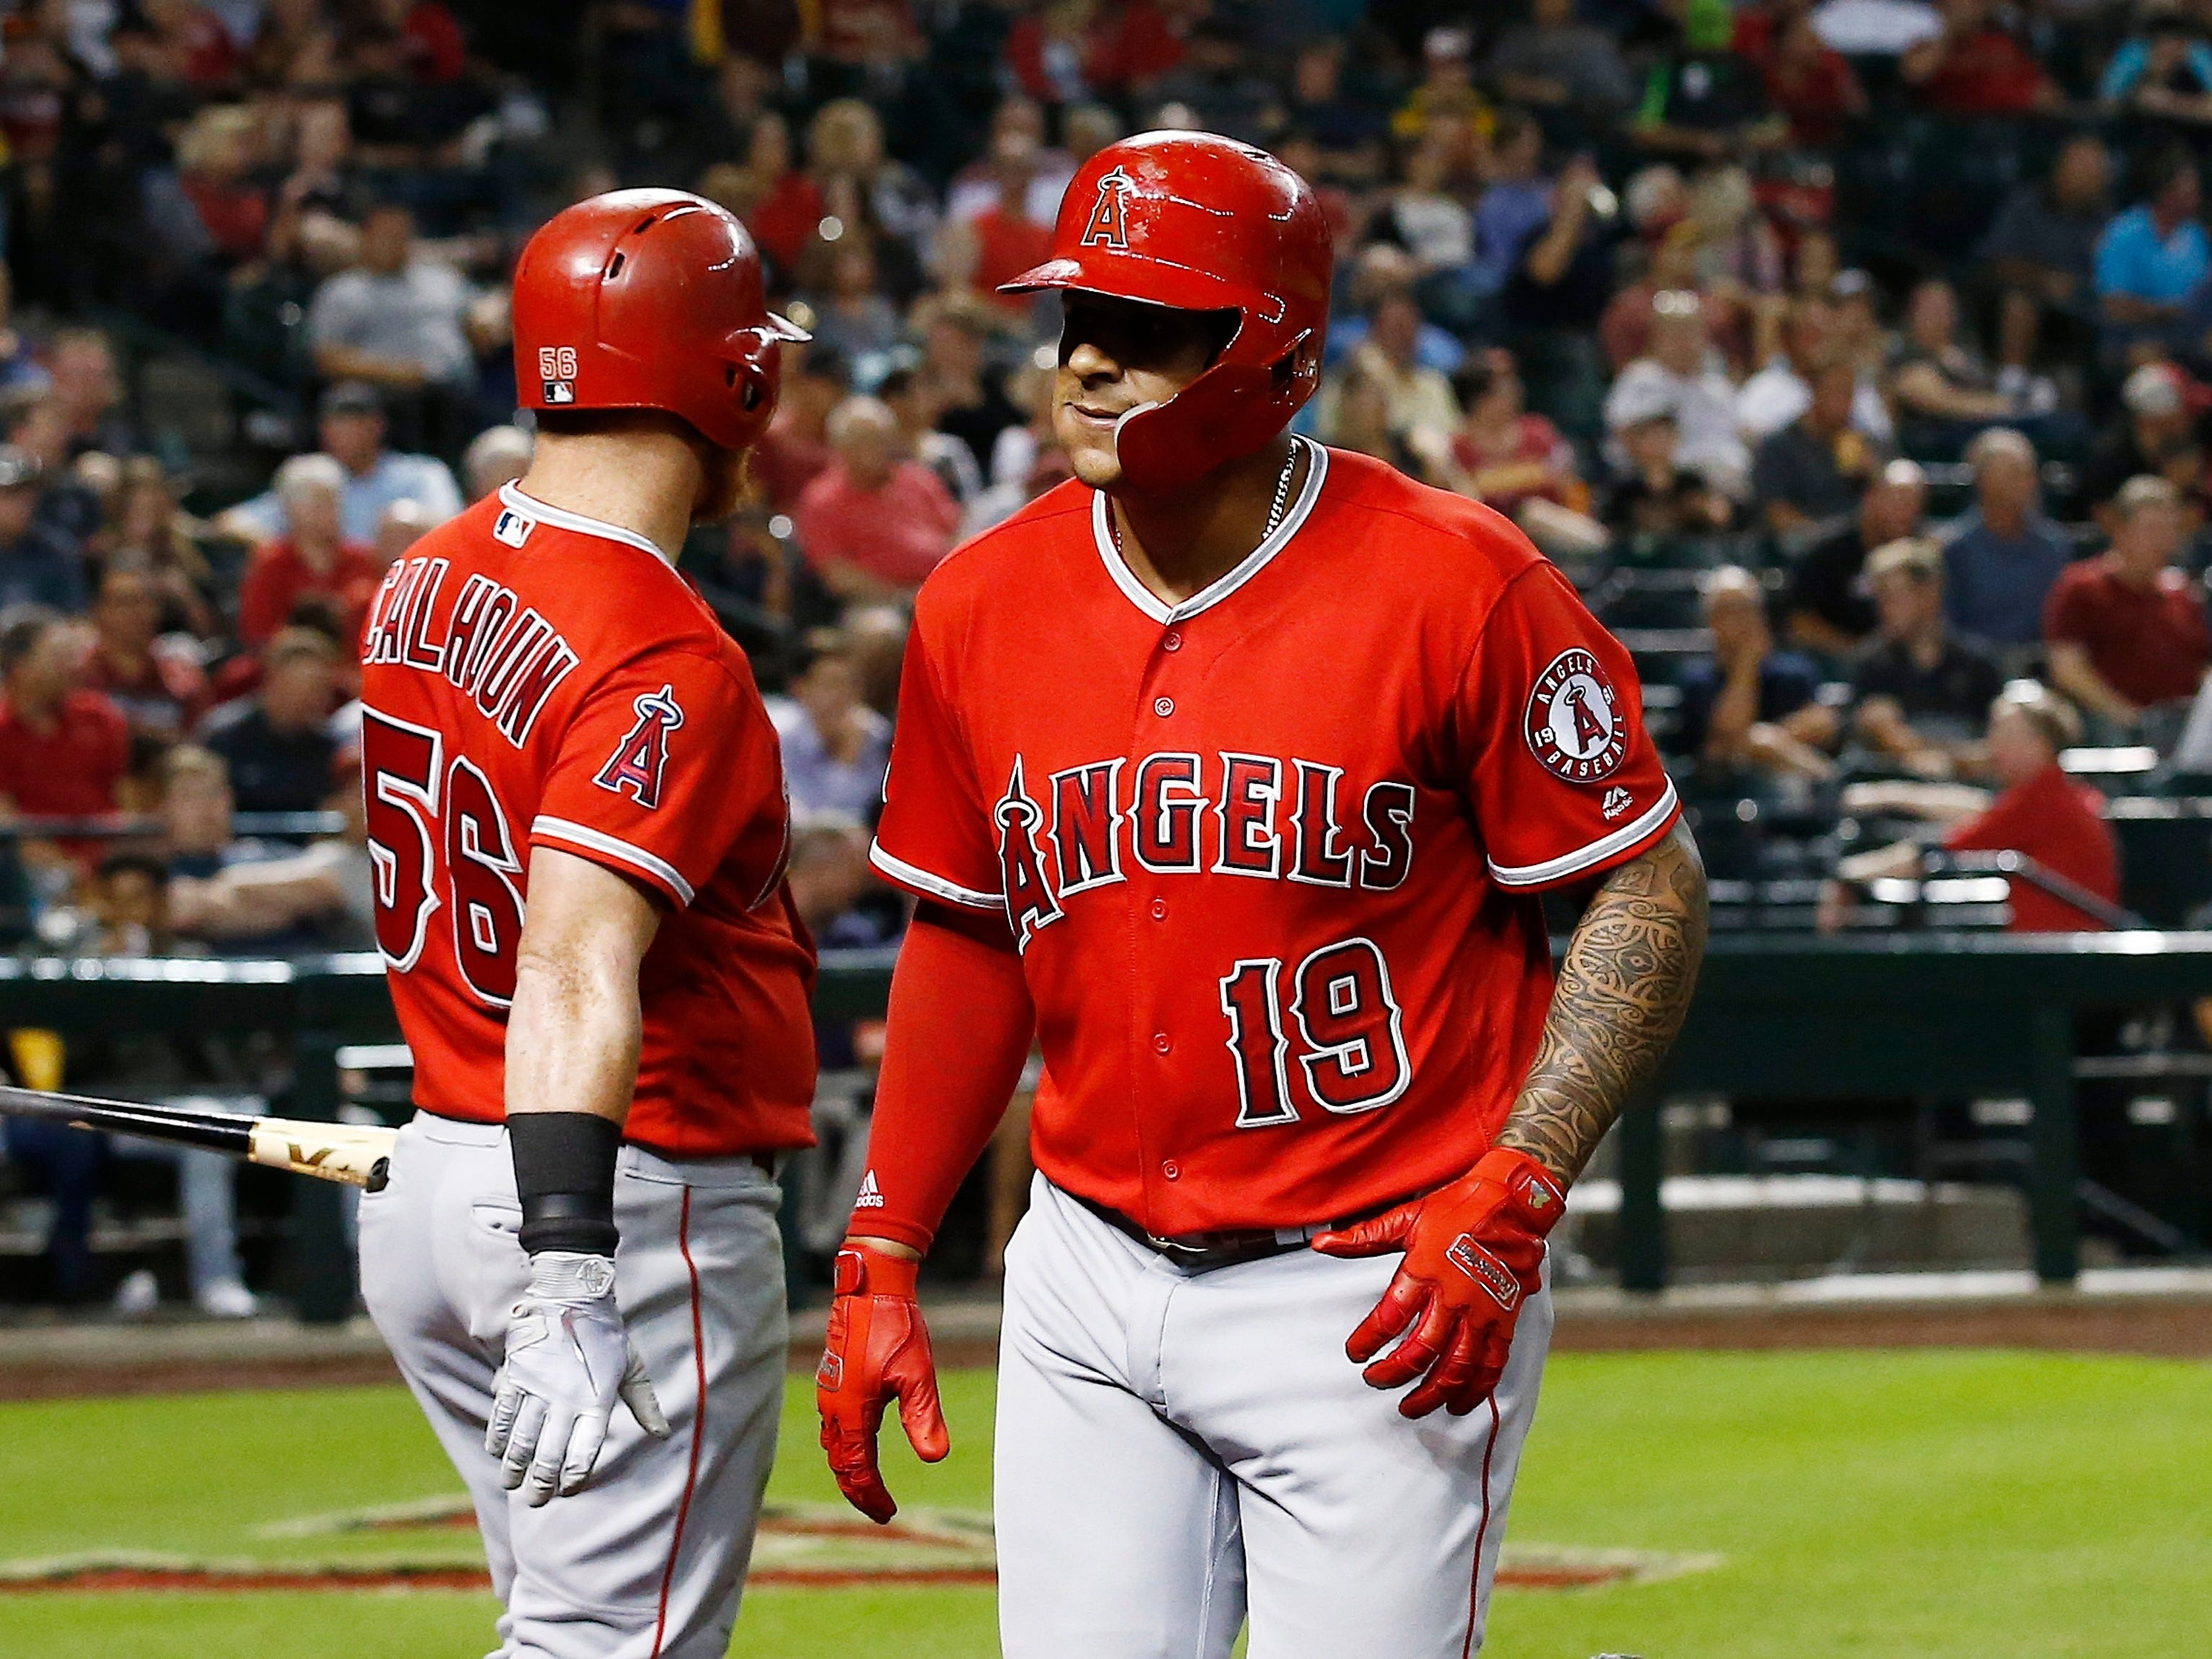 Los Angeles Angels' Jefry Marte (19) heads back to the dugout after celebrating his home run against the Arizona Diamondbacks with Kole Calhoun (56) during the seventh inning of a baseball game Tuesday, Aug. 21, 2018, in Phoenix.